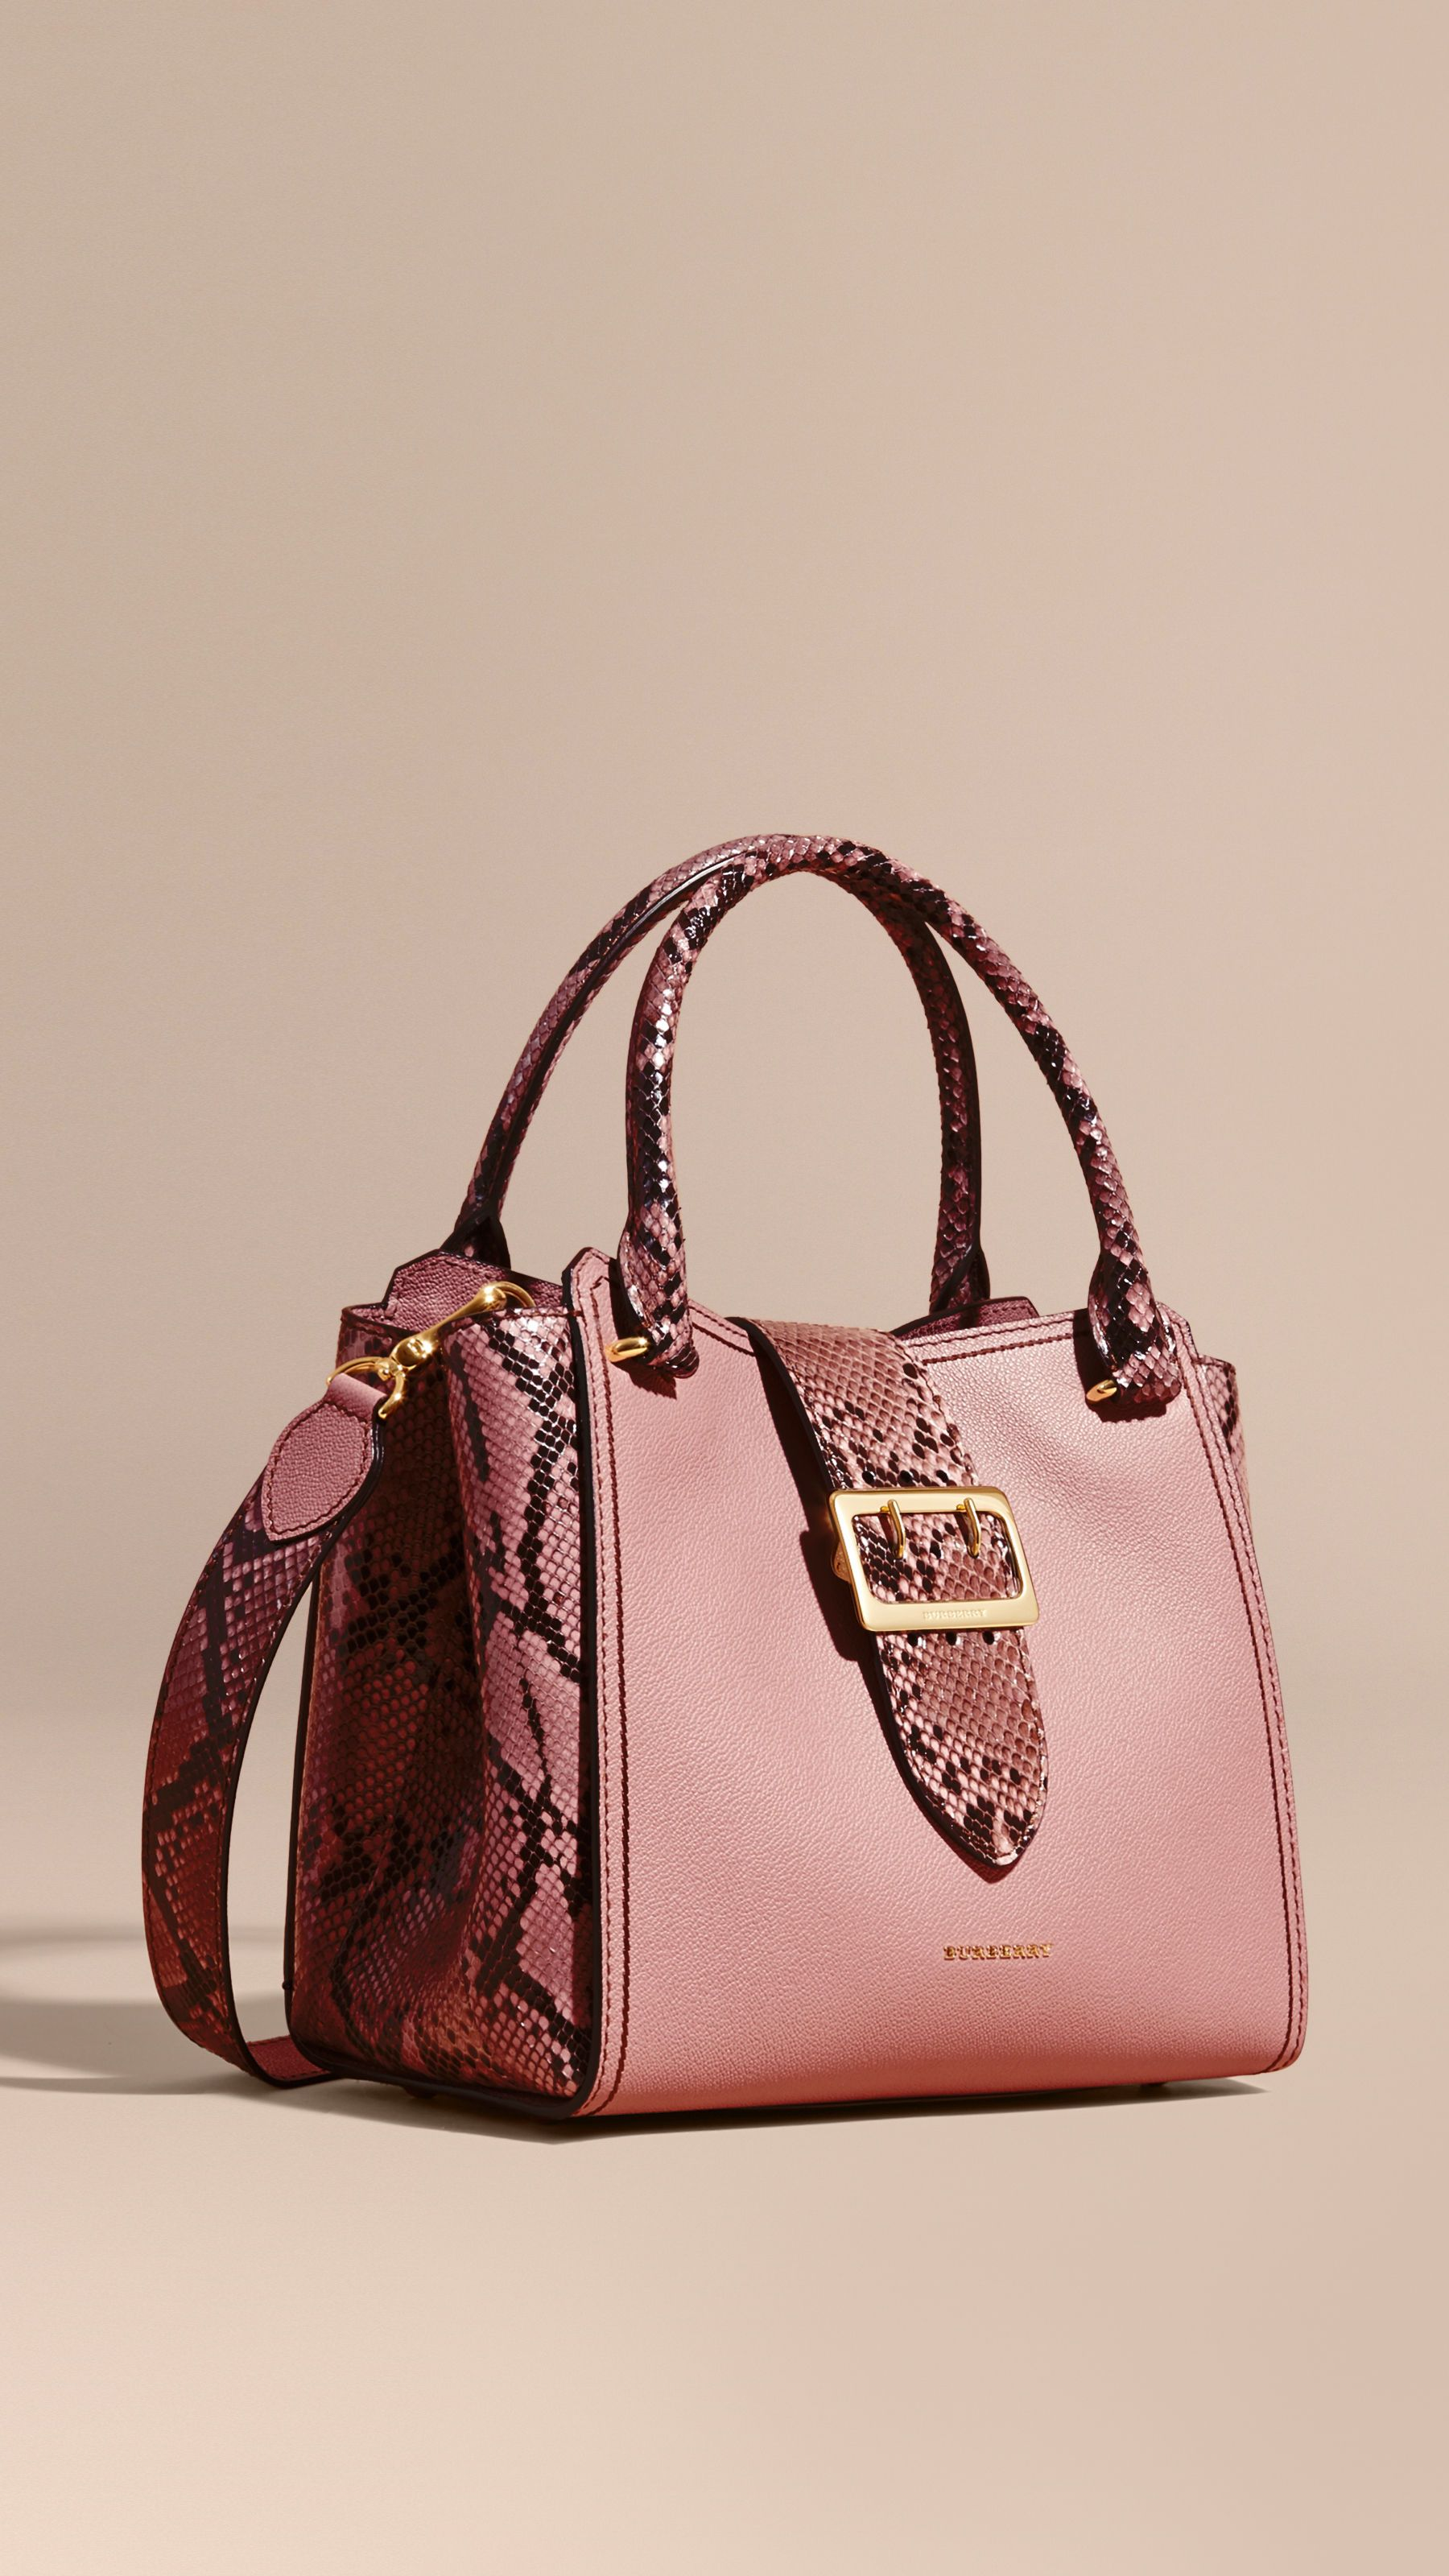 29c72fcb570d The Medium Buckle Tote in Grainy Leather and Python in Dusty Pink ...